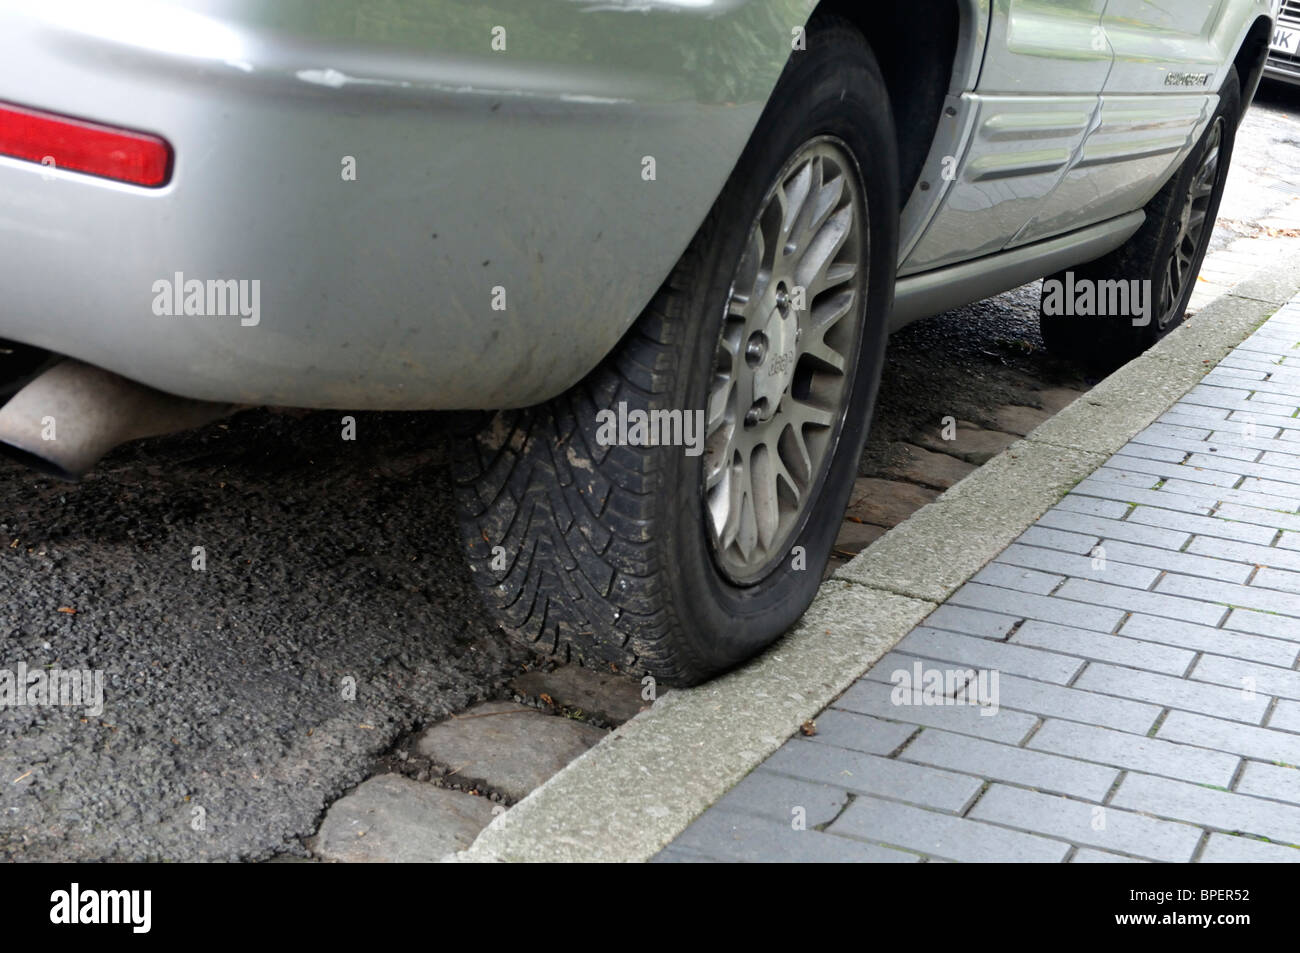 Bad car parking with part of the rear tyre on the pavement. - Stock Image